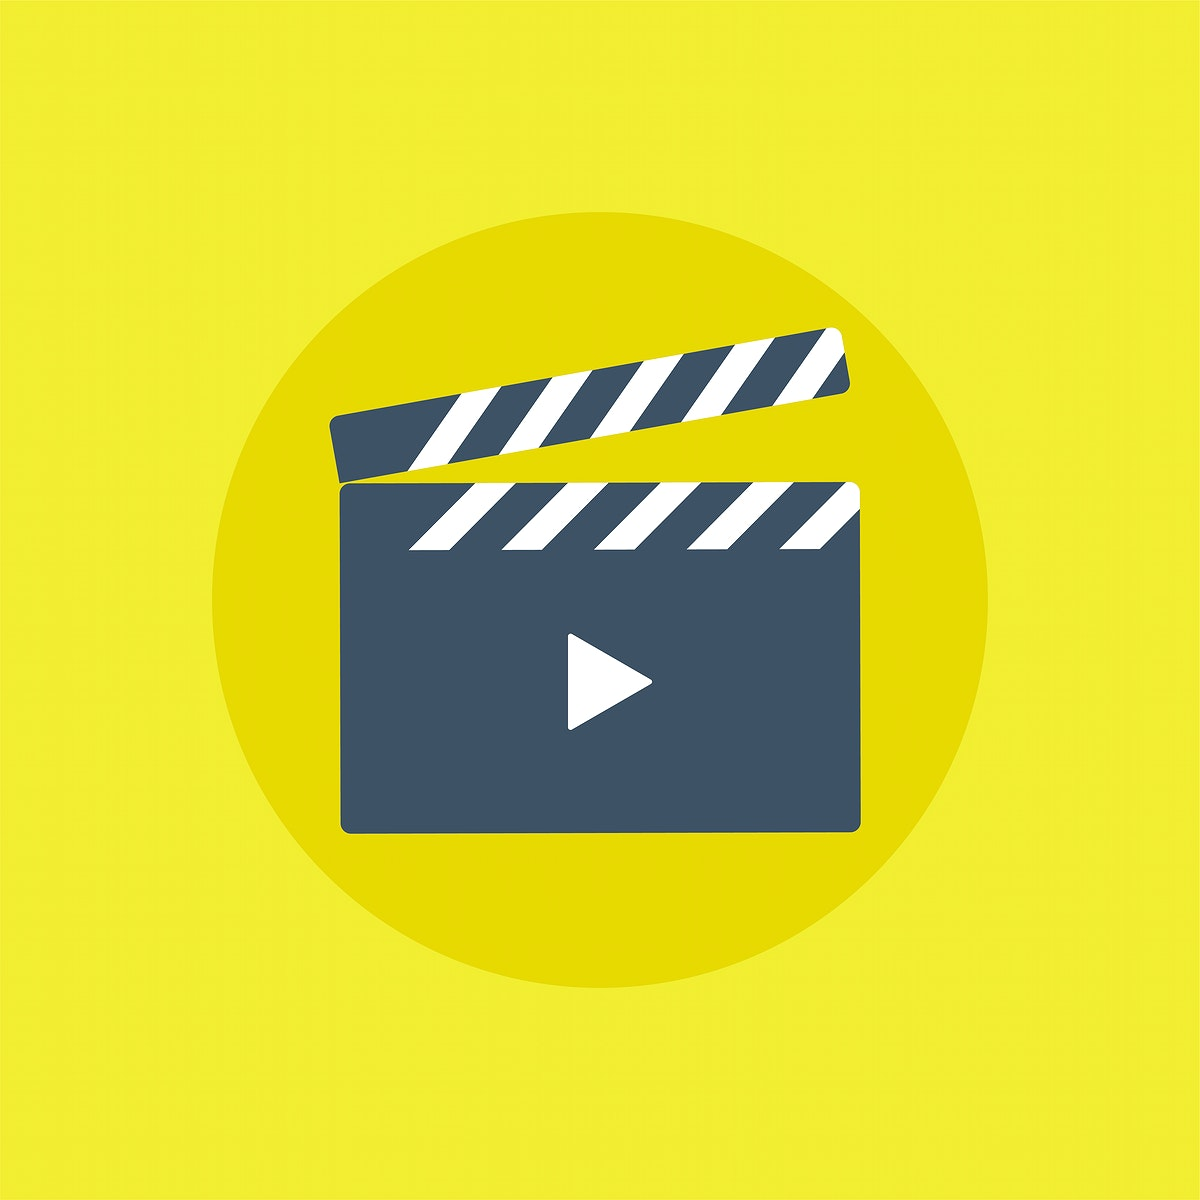 Vector of movie player icon